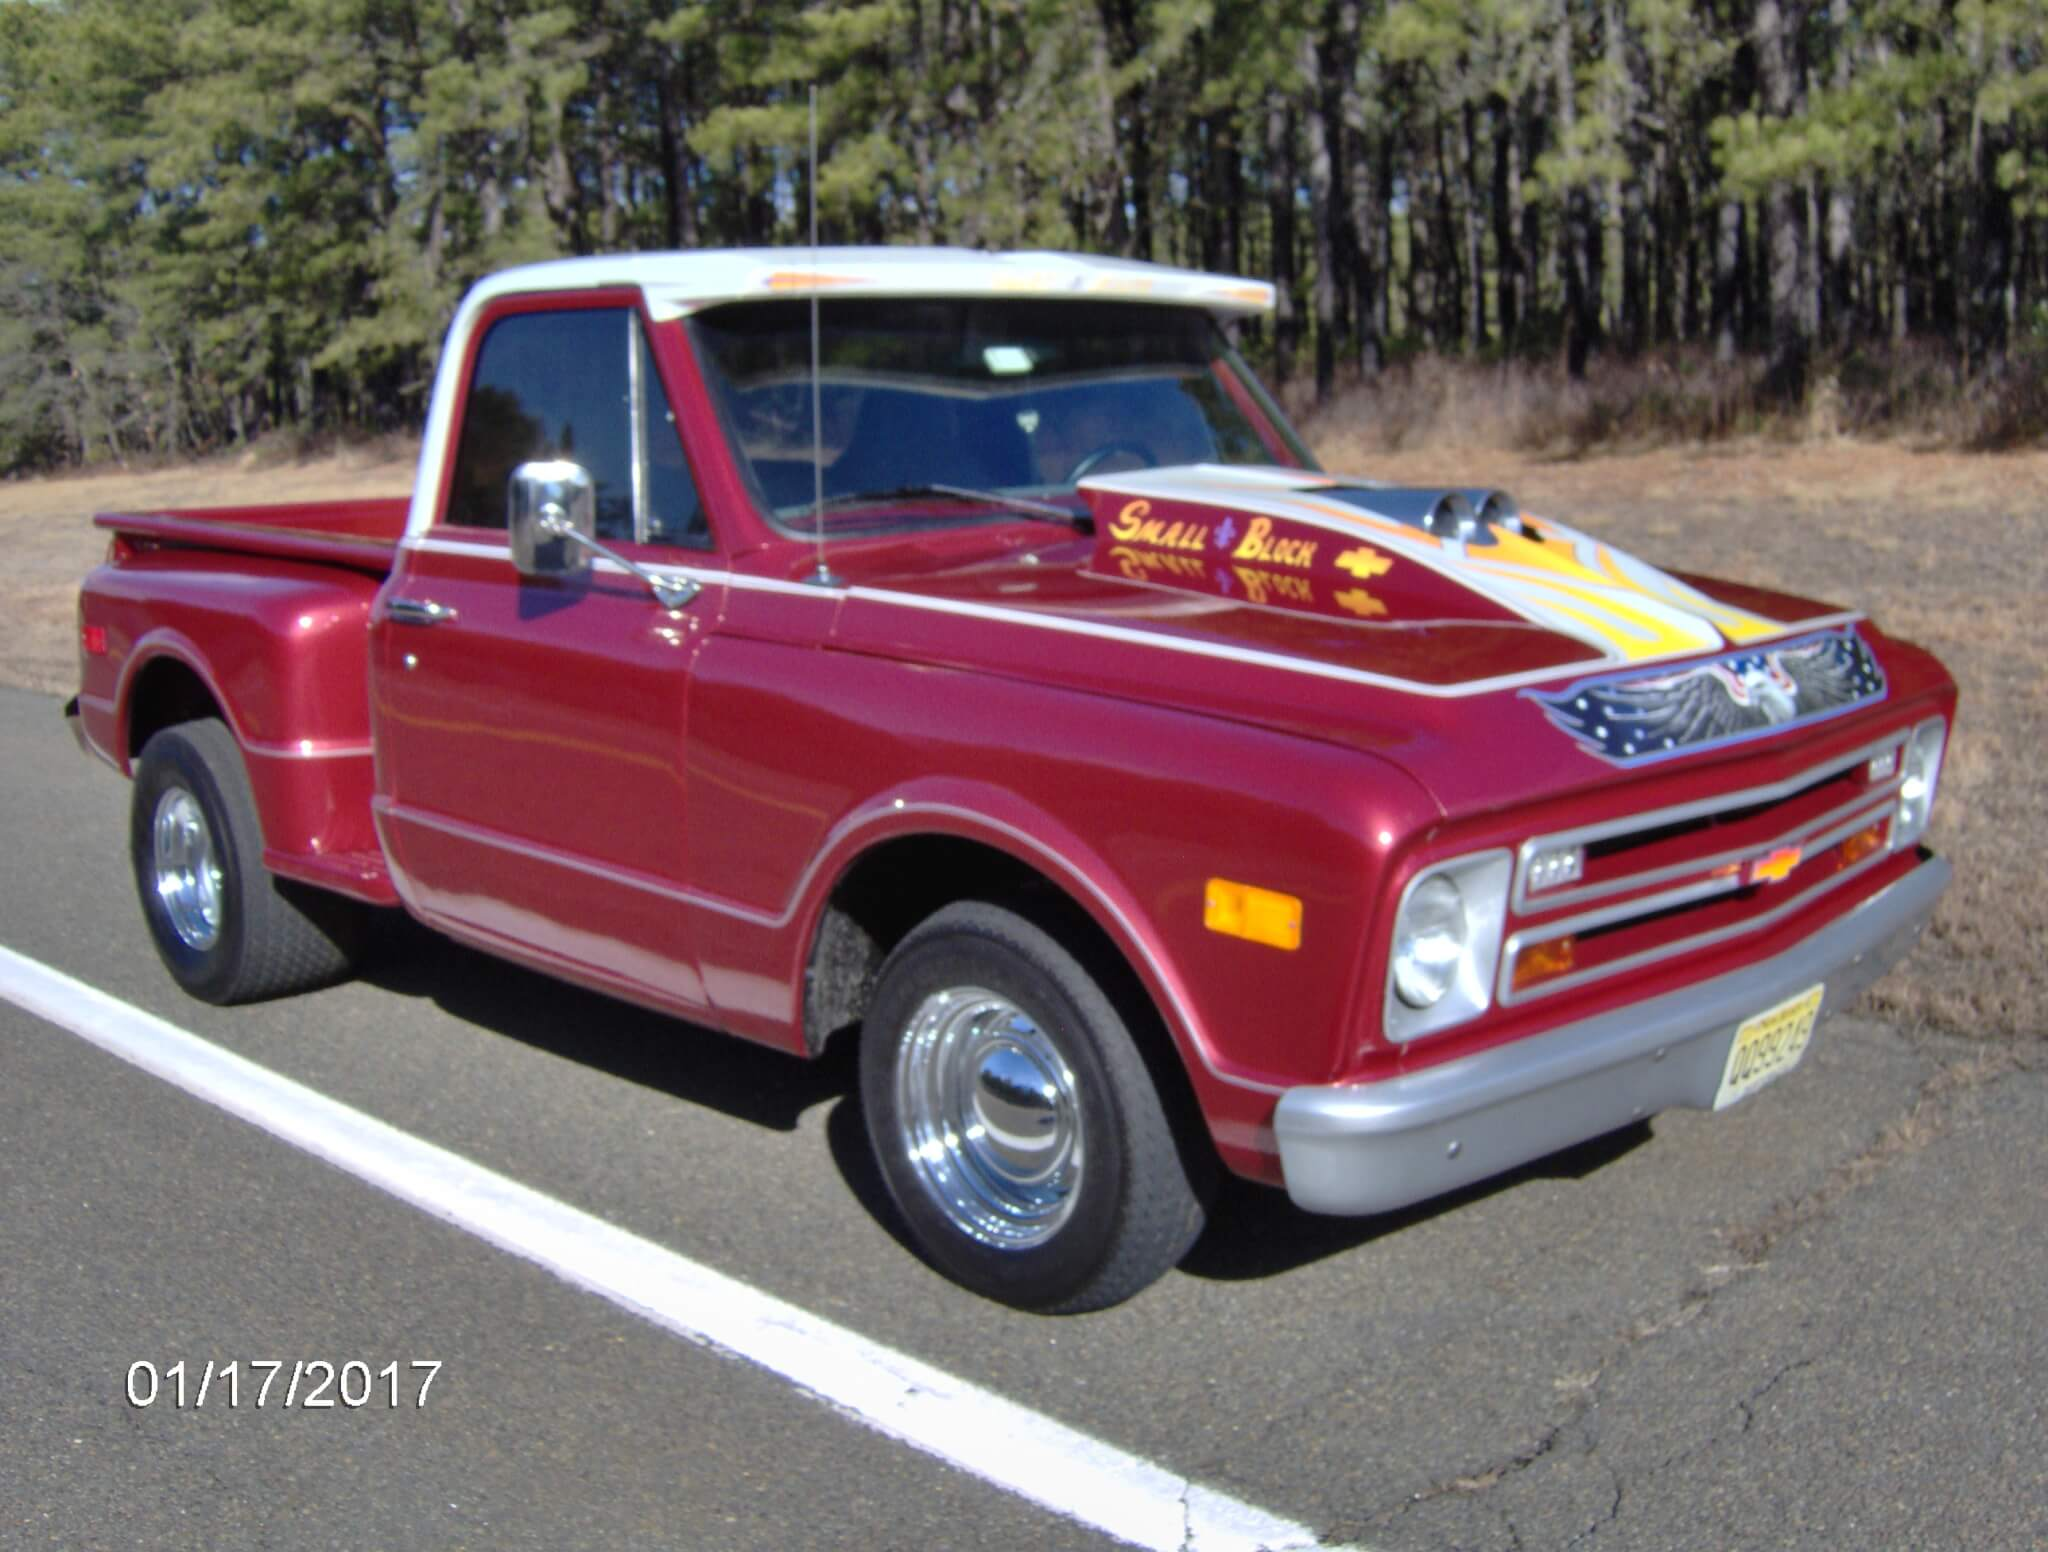 1968 Chevy C10 Charles C Lmc Truck Life Pickup Well We Got It Done And At The Same Time Build An Even Stronger Relationship Together So Much More To Say But Not Enough Room